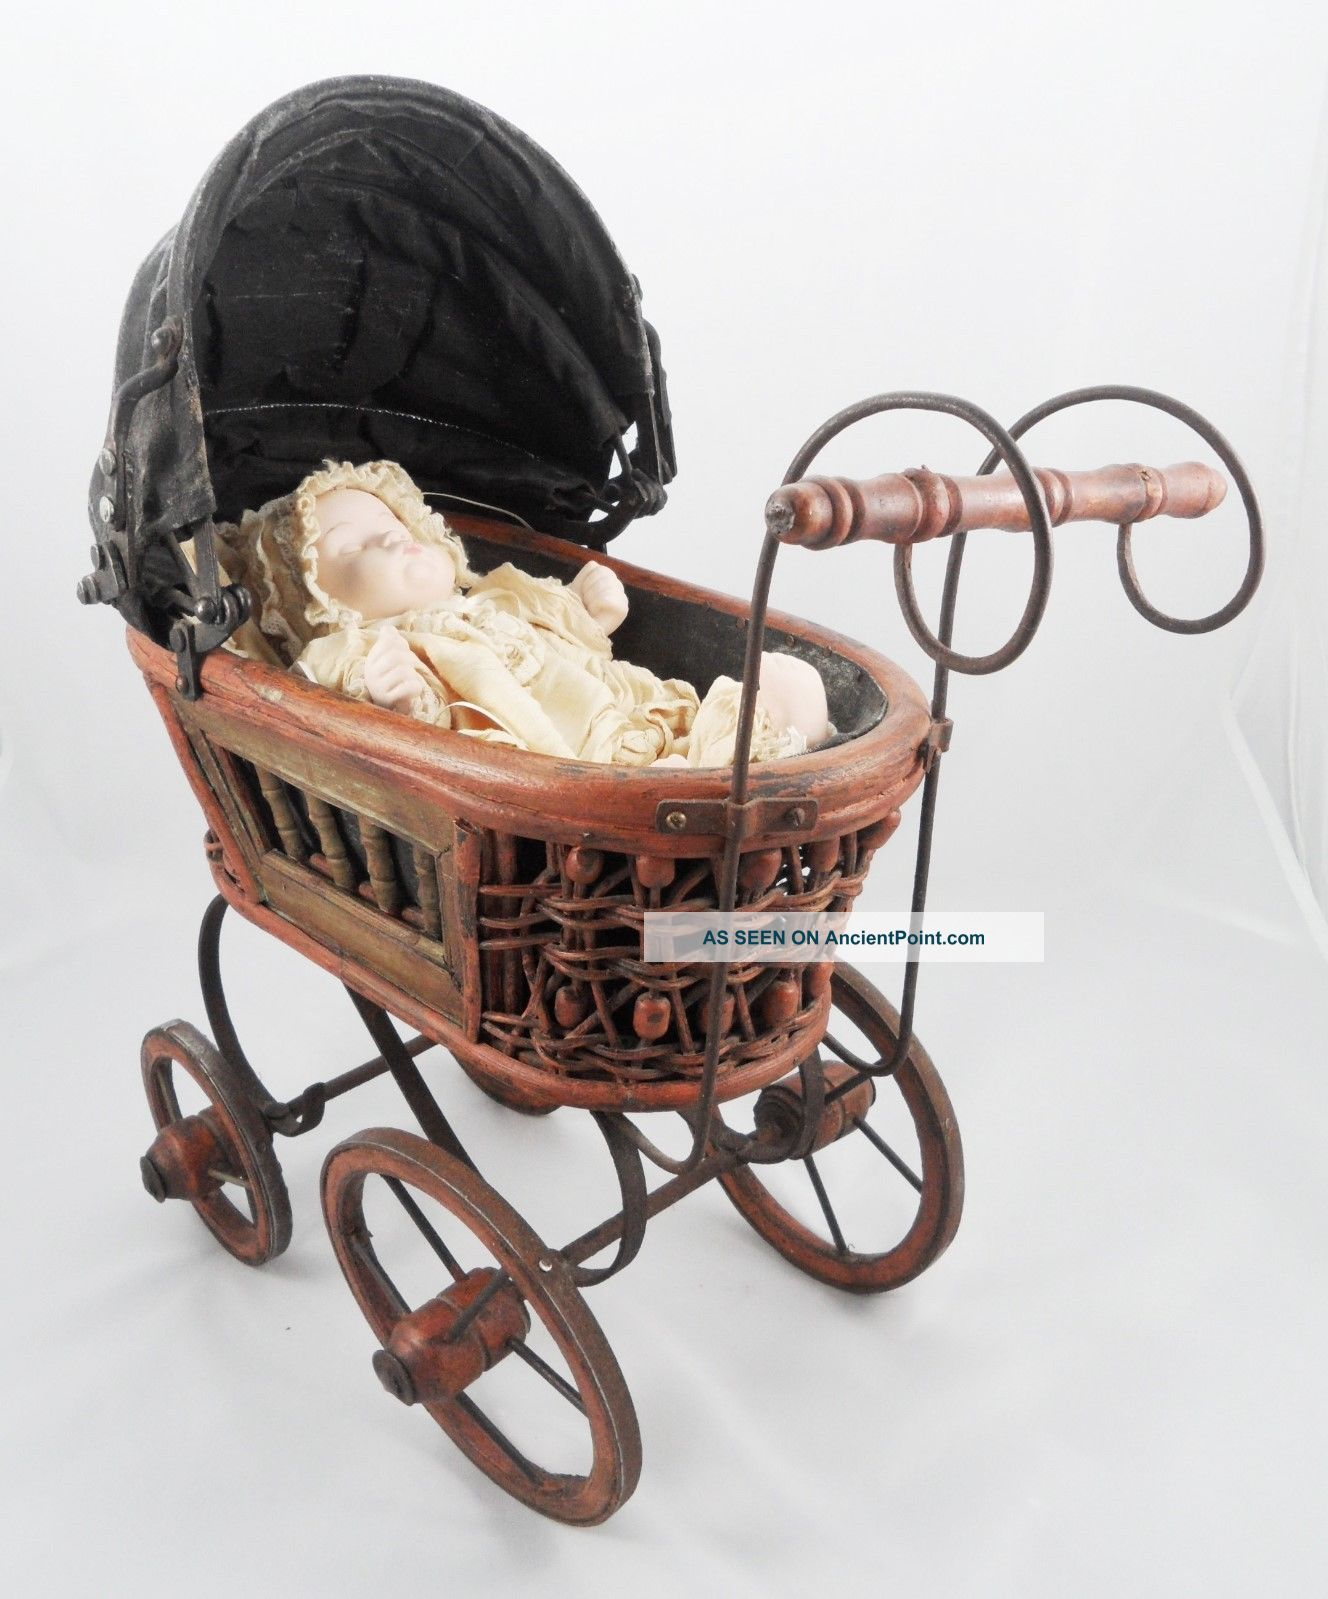 Vintage Toy Stroller Vintage Repro German Baby Doll Stroller Carriage Buggy